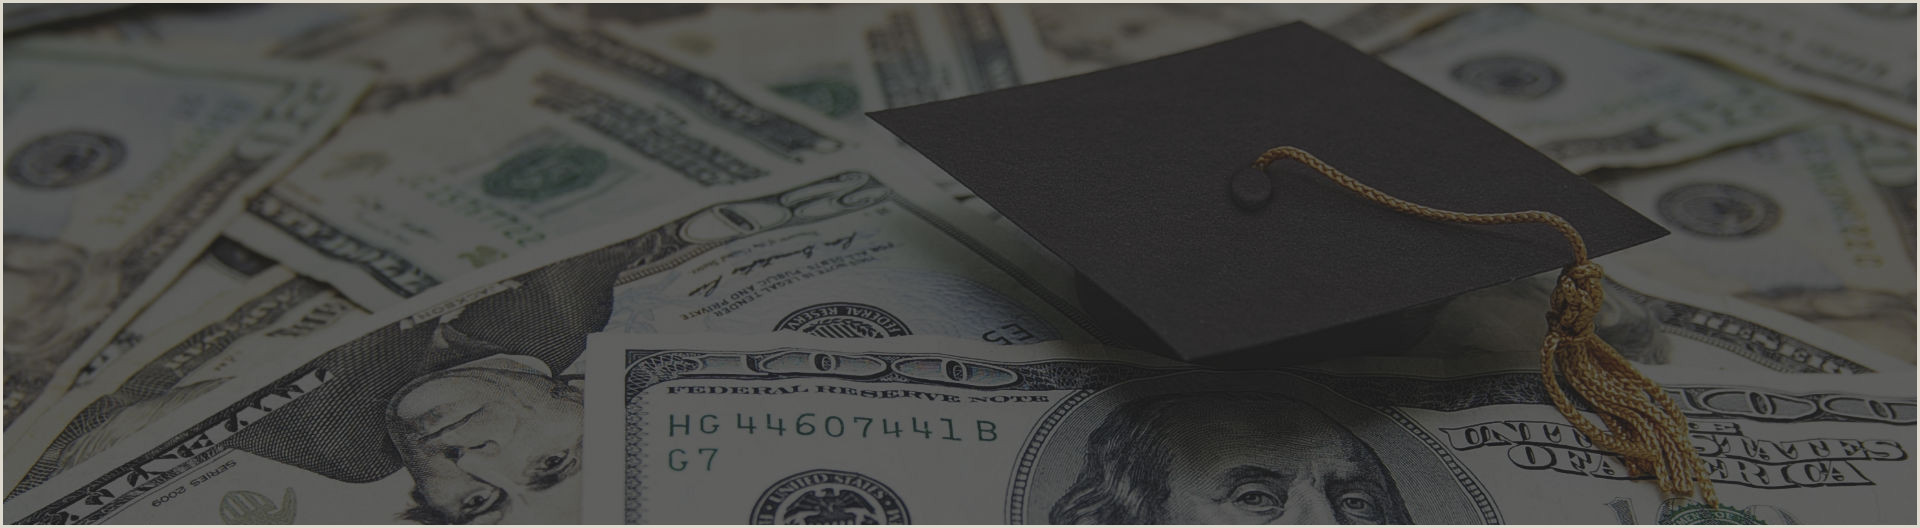 Examples Of Scholarship Essays On Financial Need Iasfund